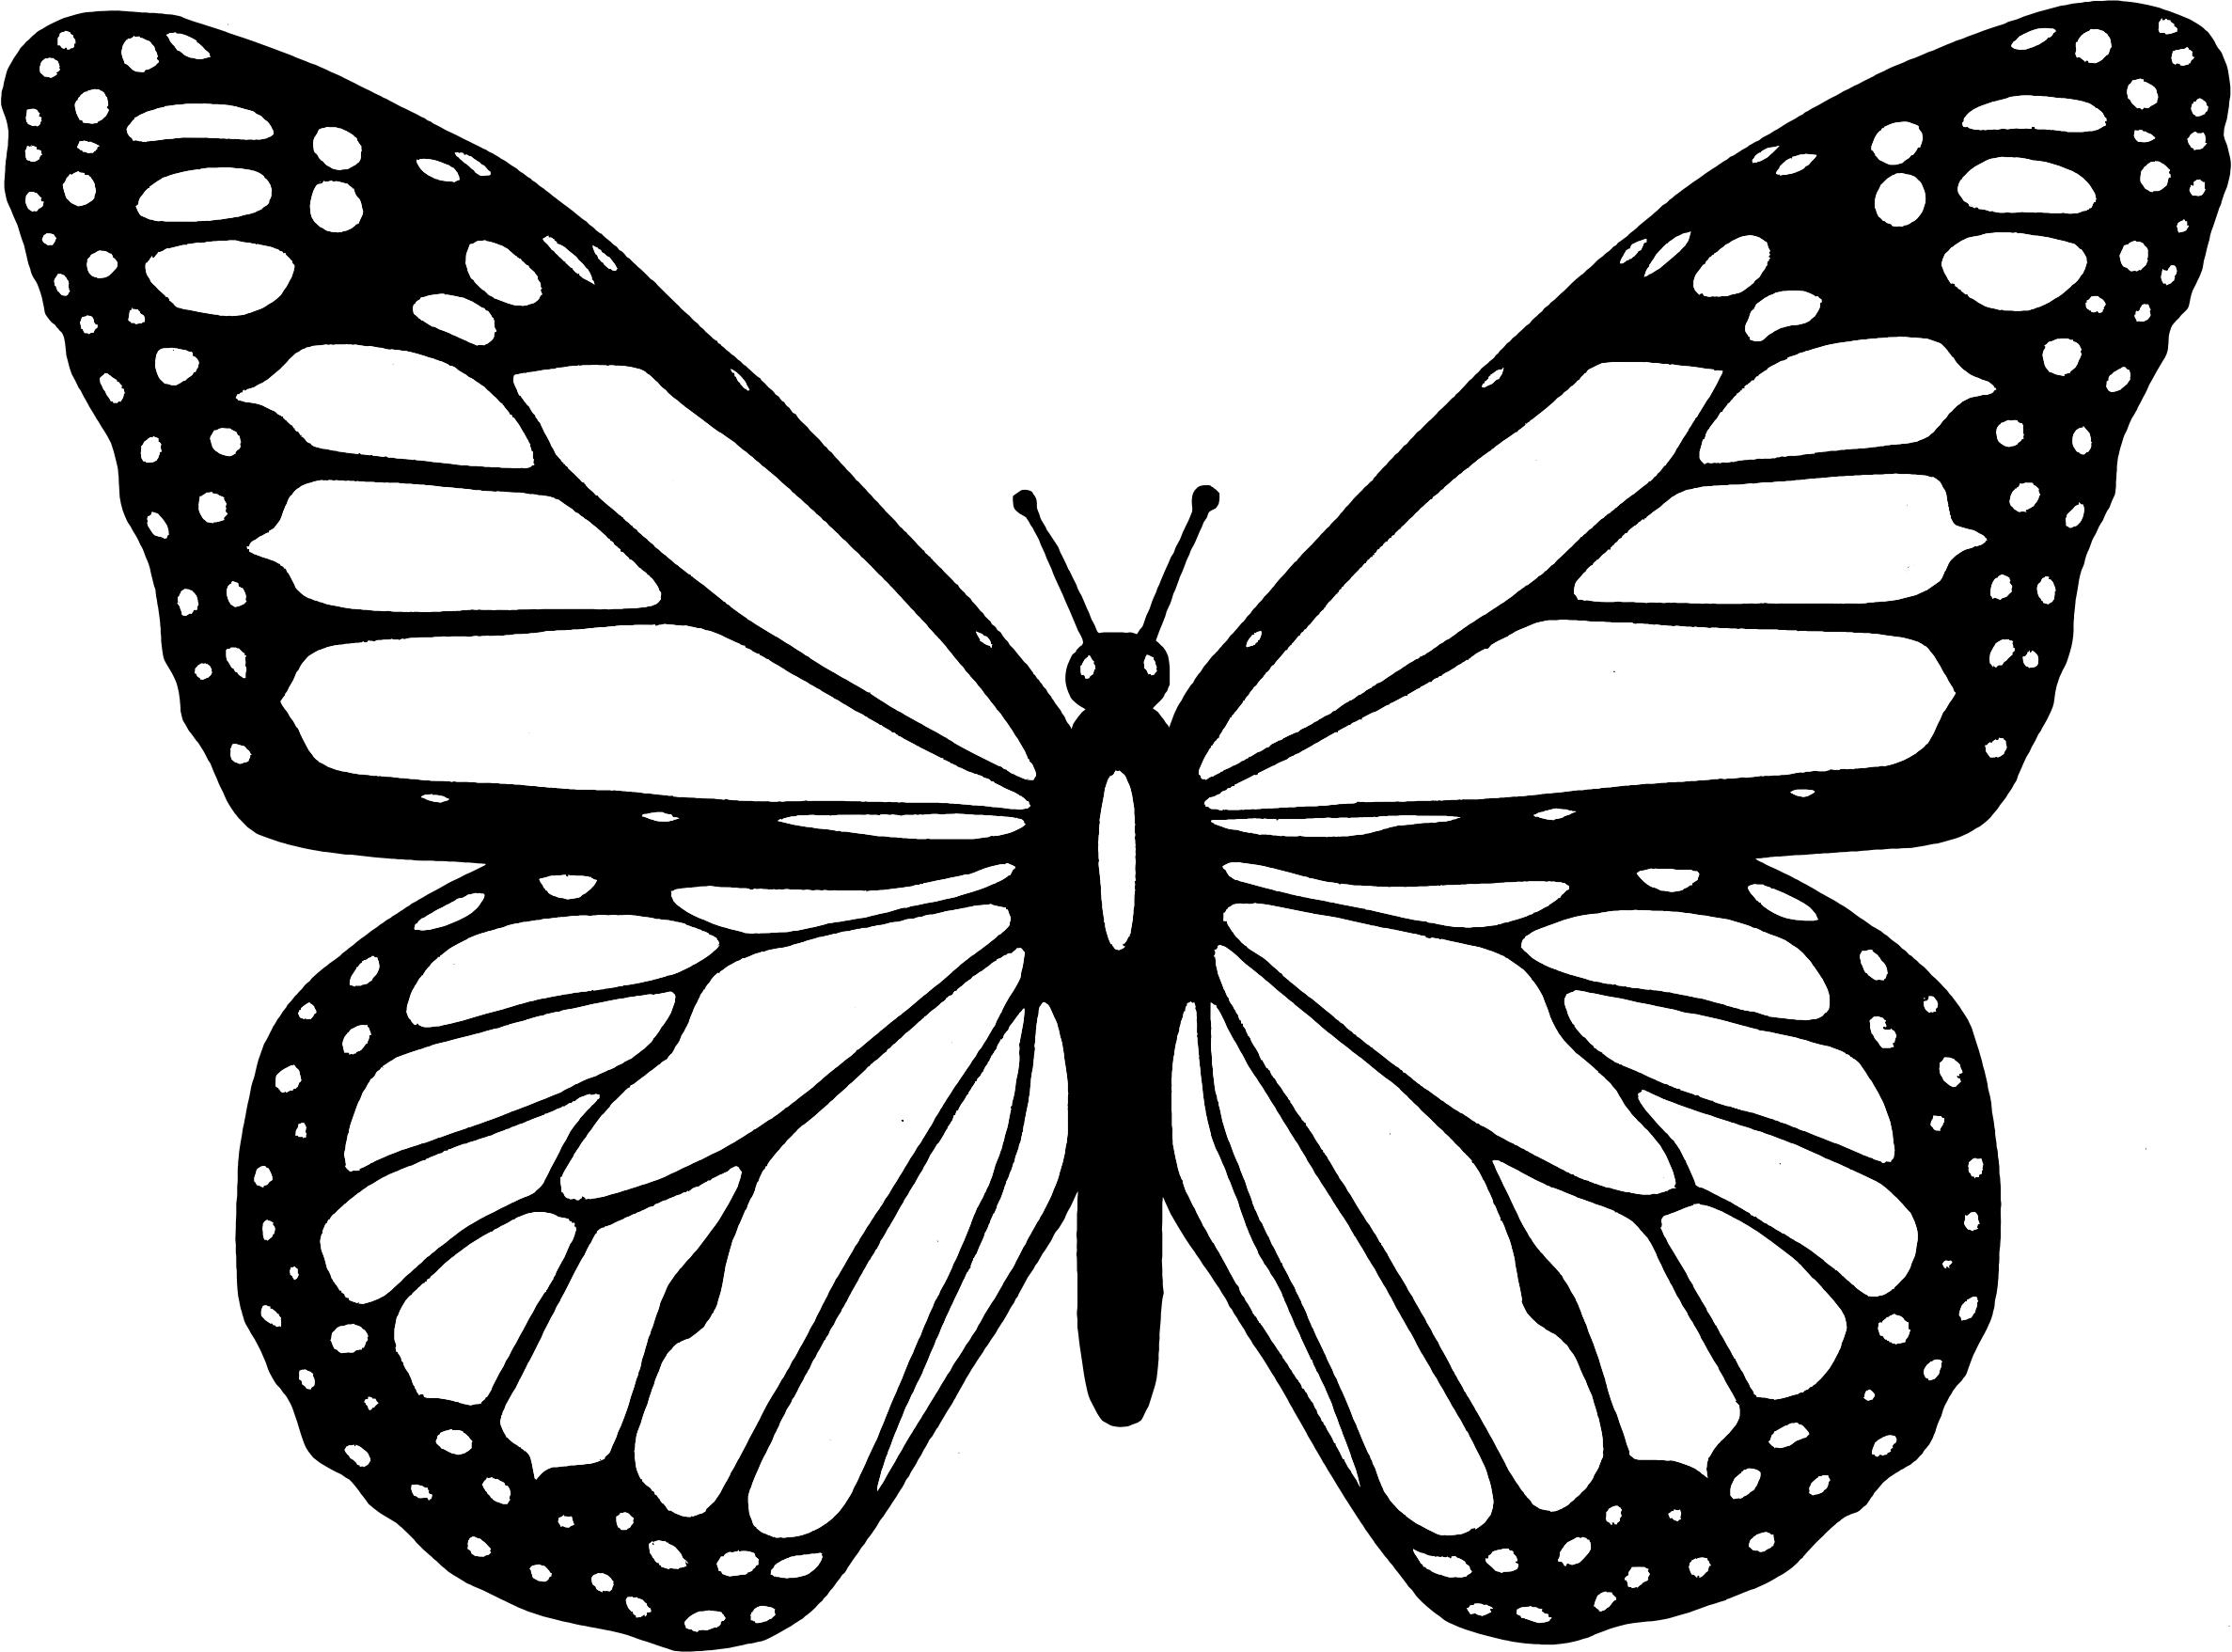 Black and white clipart png jpg library library Butterfly black and white clipart black and white butterfly ... jpg library library